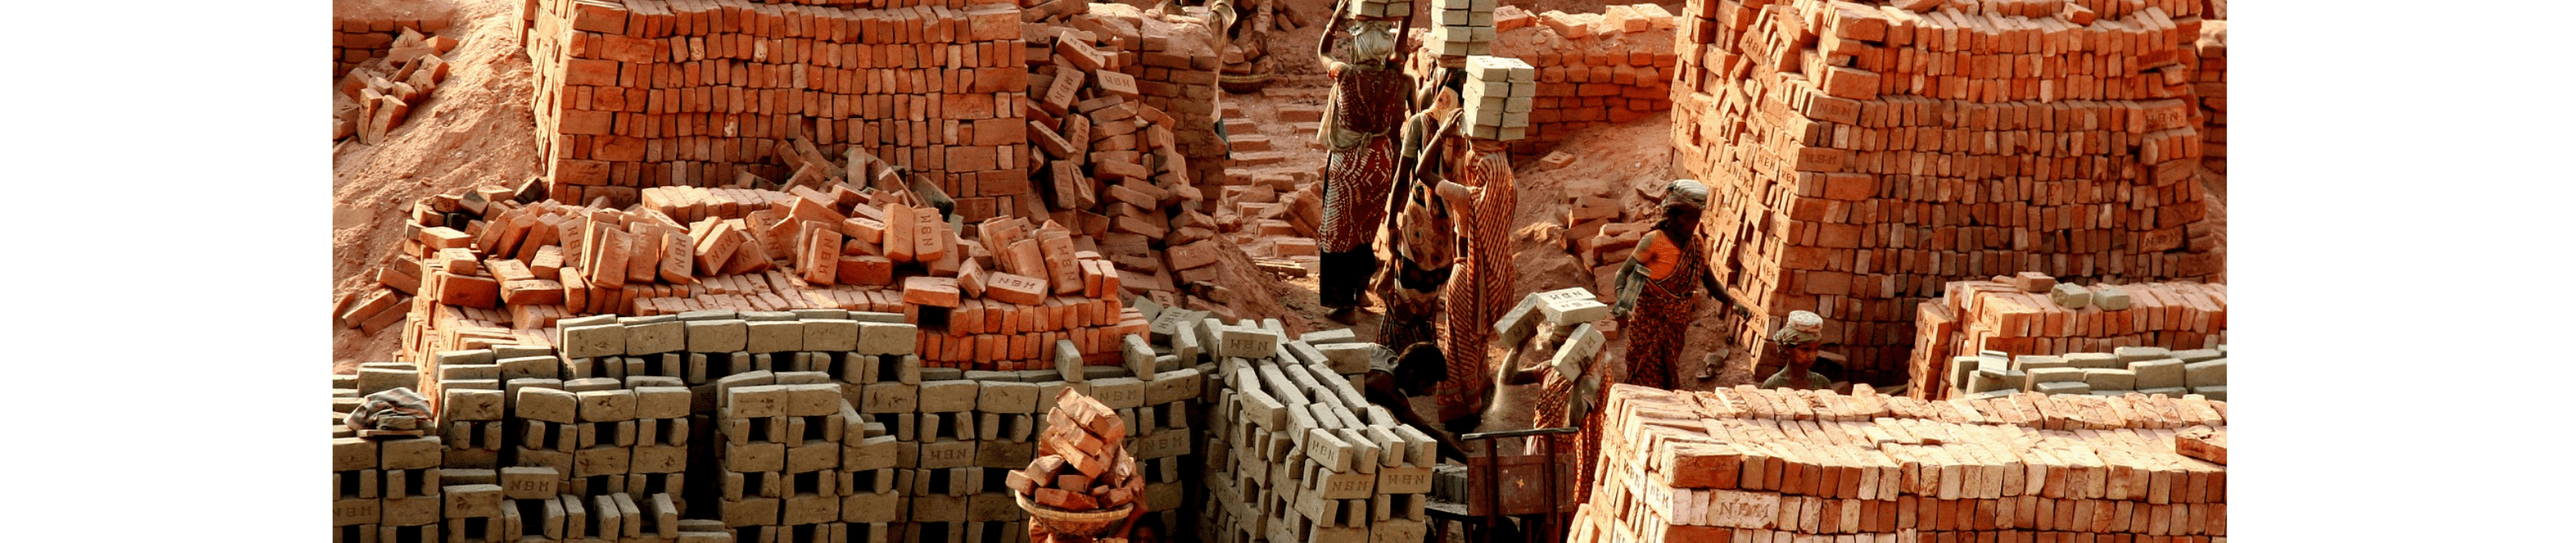 A photo of working women carrying bricks on their head in Bangladesh